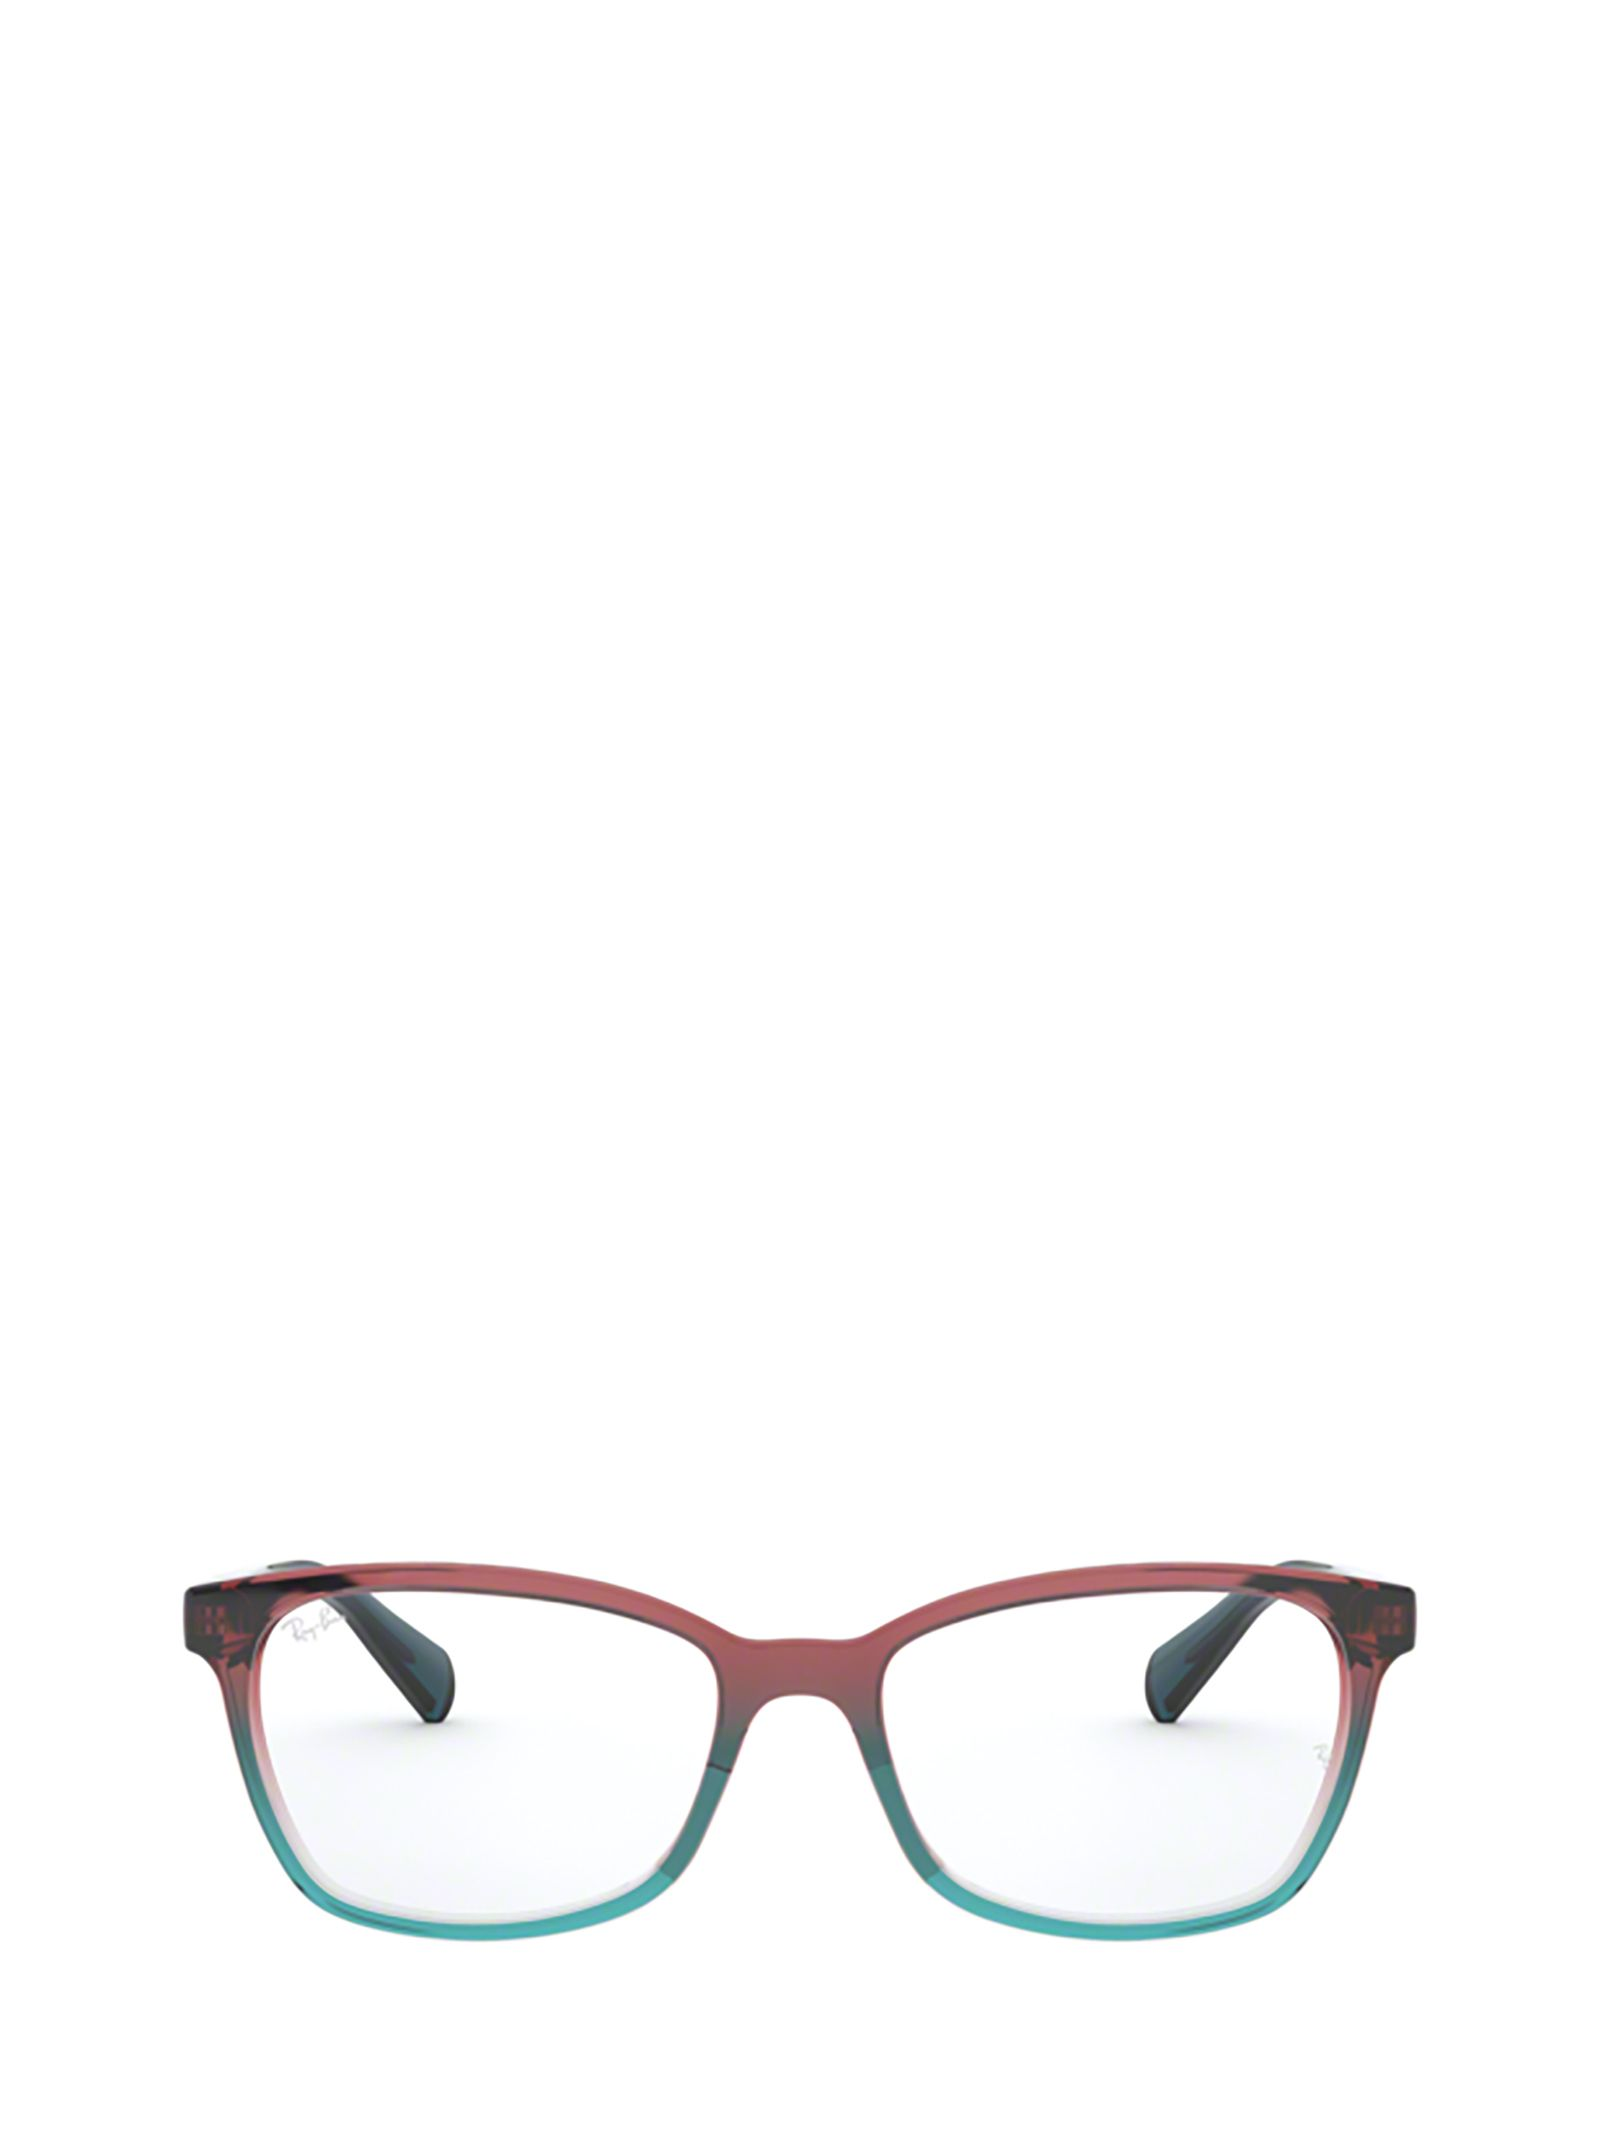 Ray Ban RAY BAN WOMEN'S PINK ACETATE GLASSES